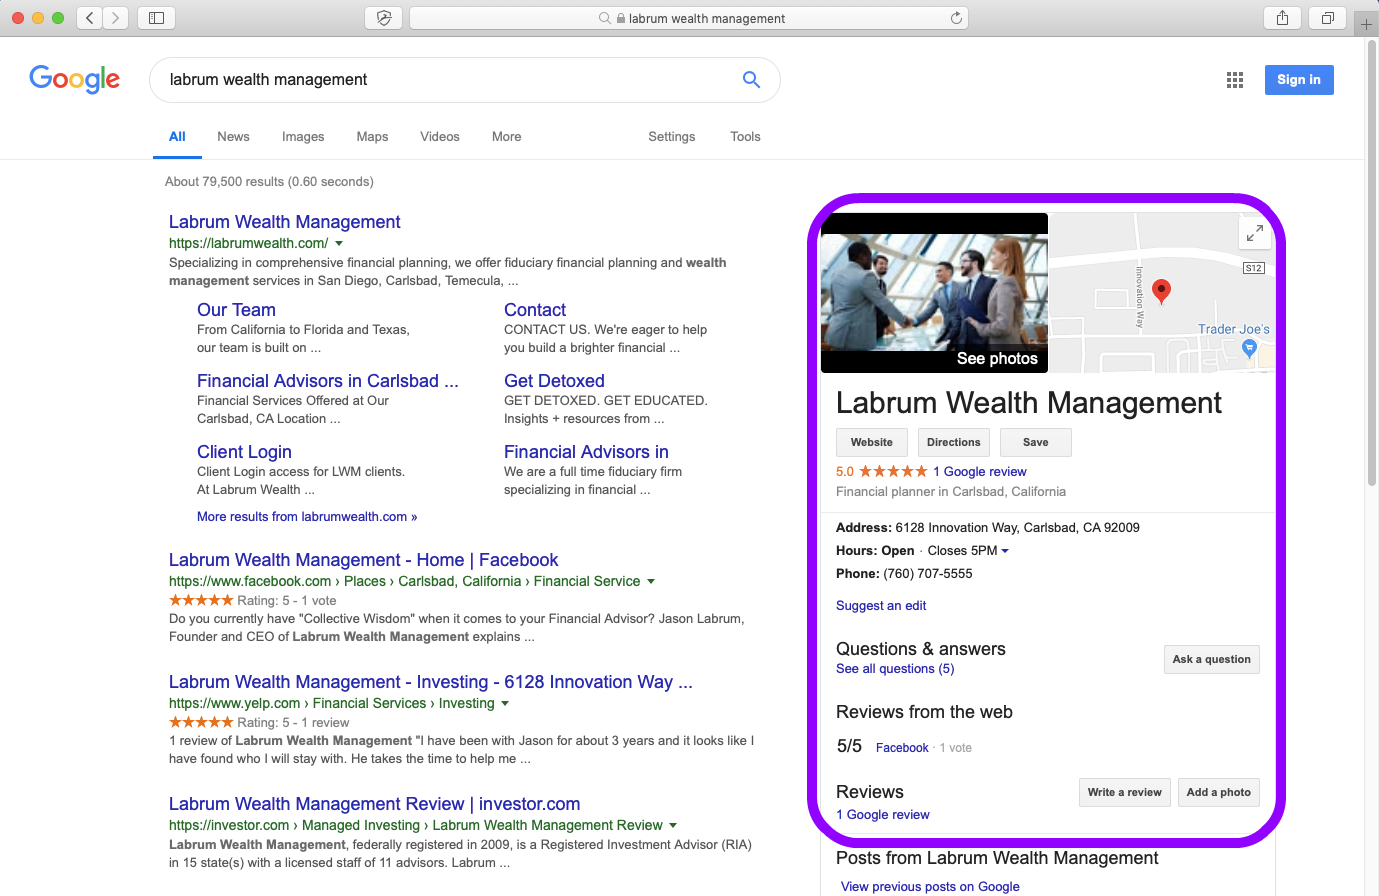 Advisory Firm Google My Business Page Listing